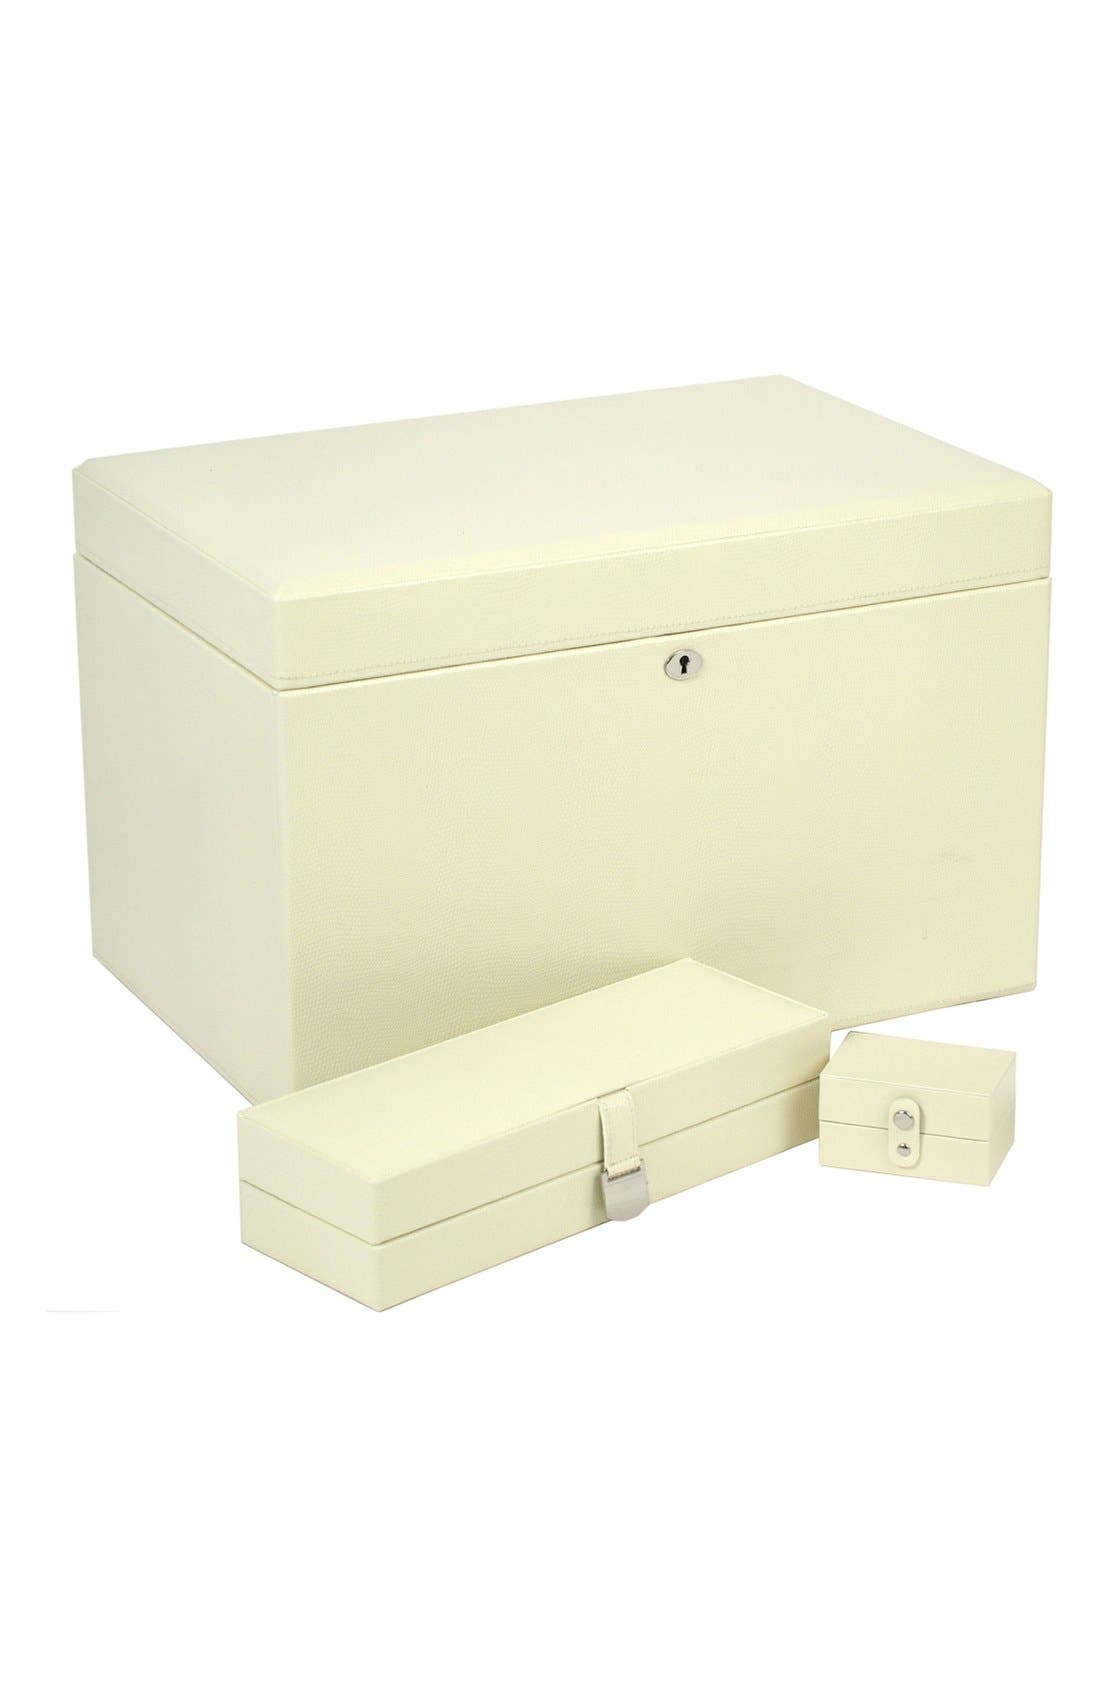 London Large Jewelry Box,                             Main thumbnail 1, color,                             CREAM